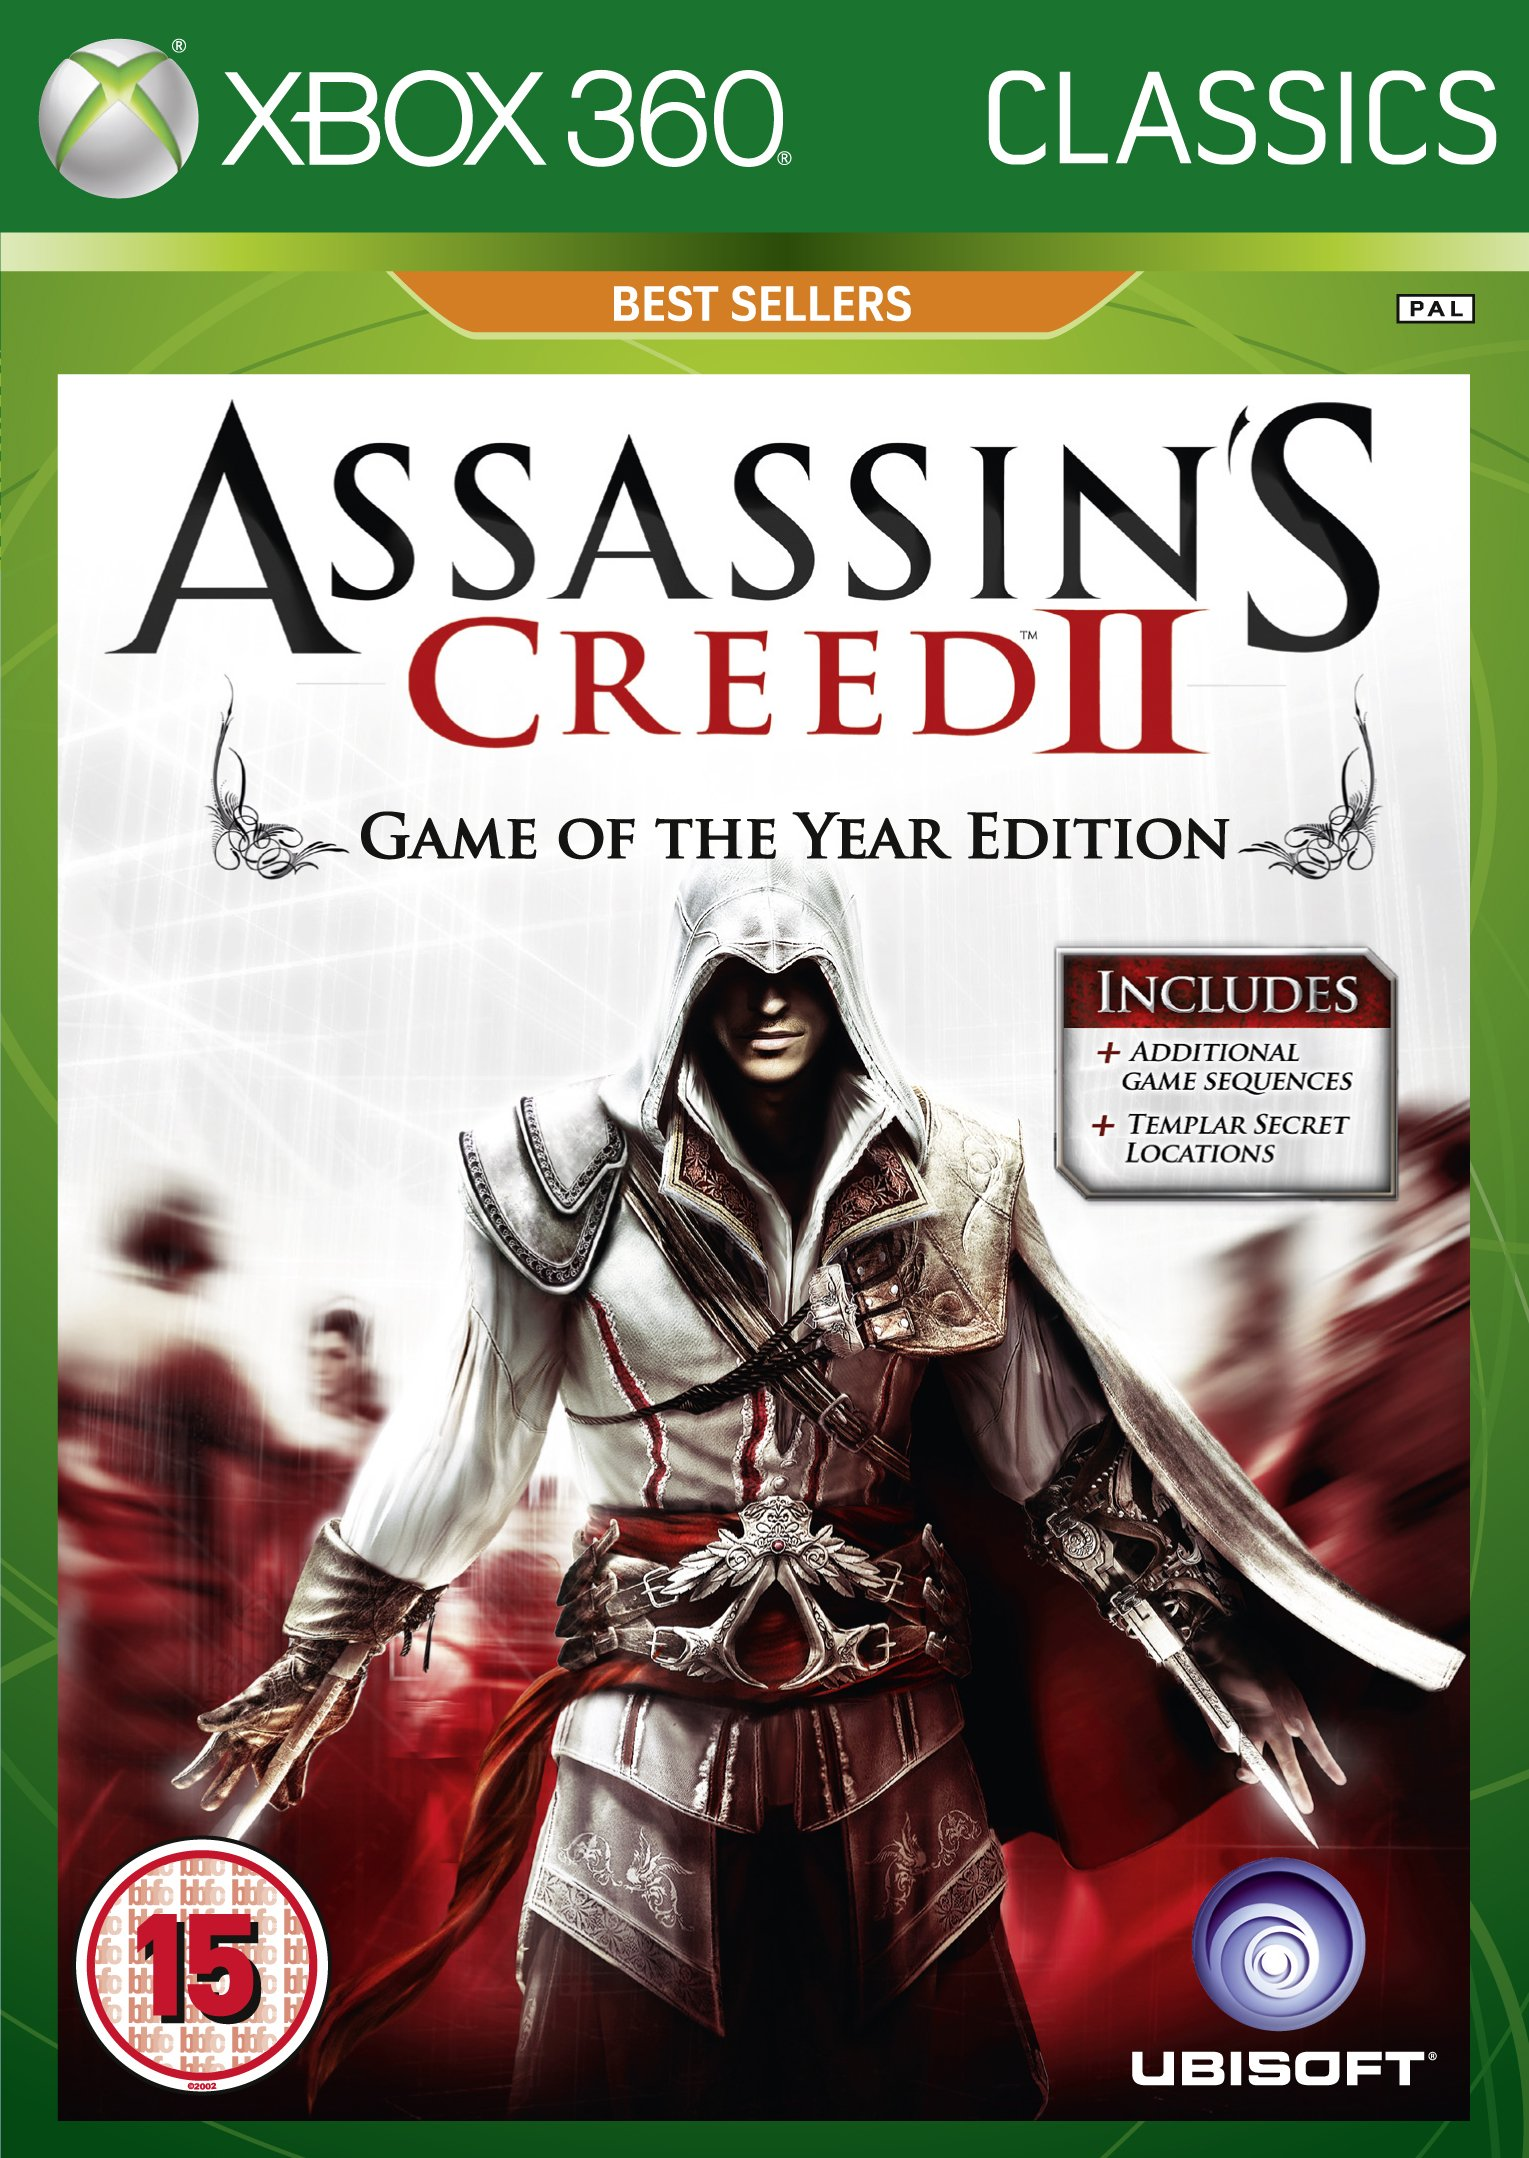 Assassin's Creed II (Xbox 360) product image